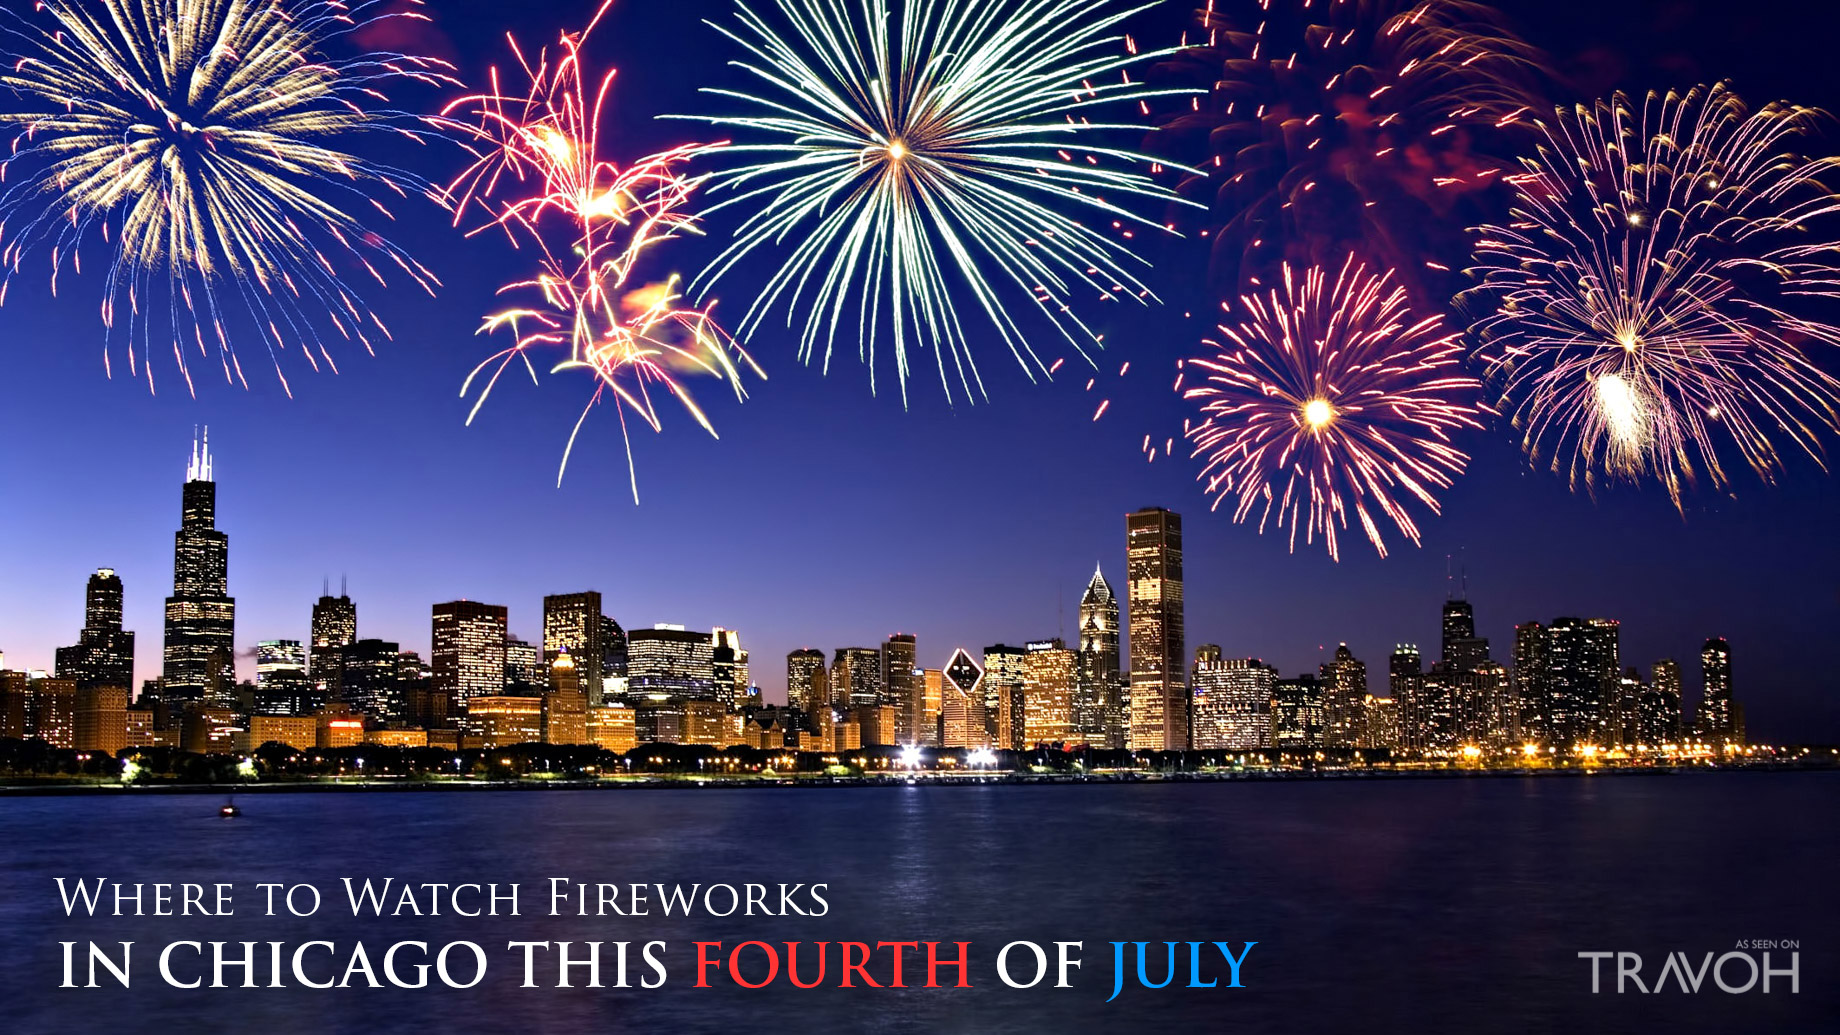 Where to Watch Fireworks in Chicago This Fourth of July